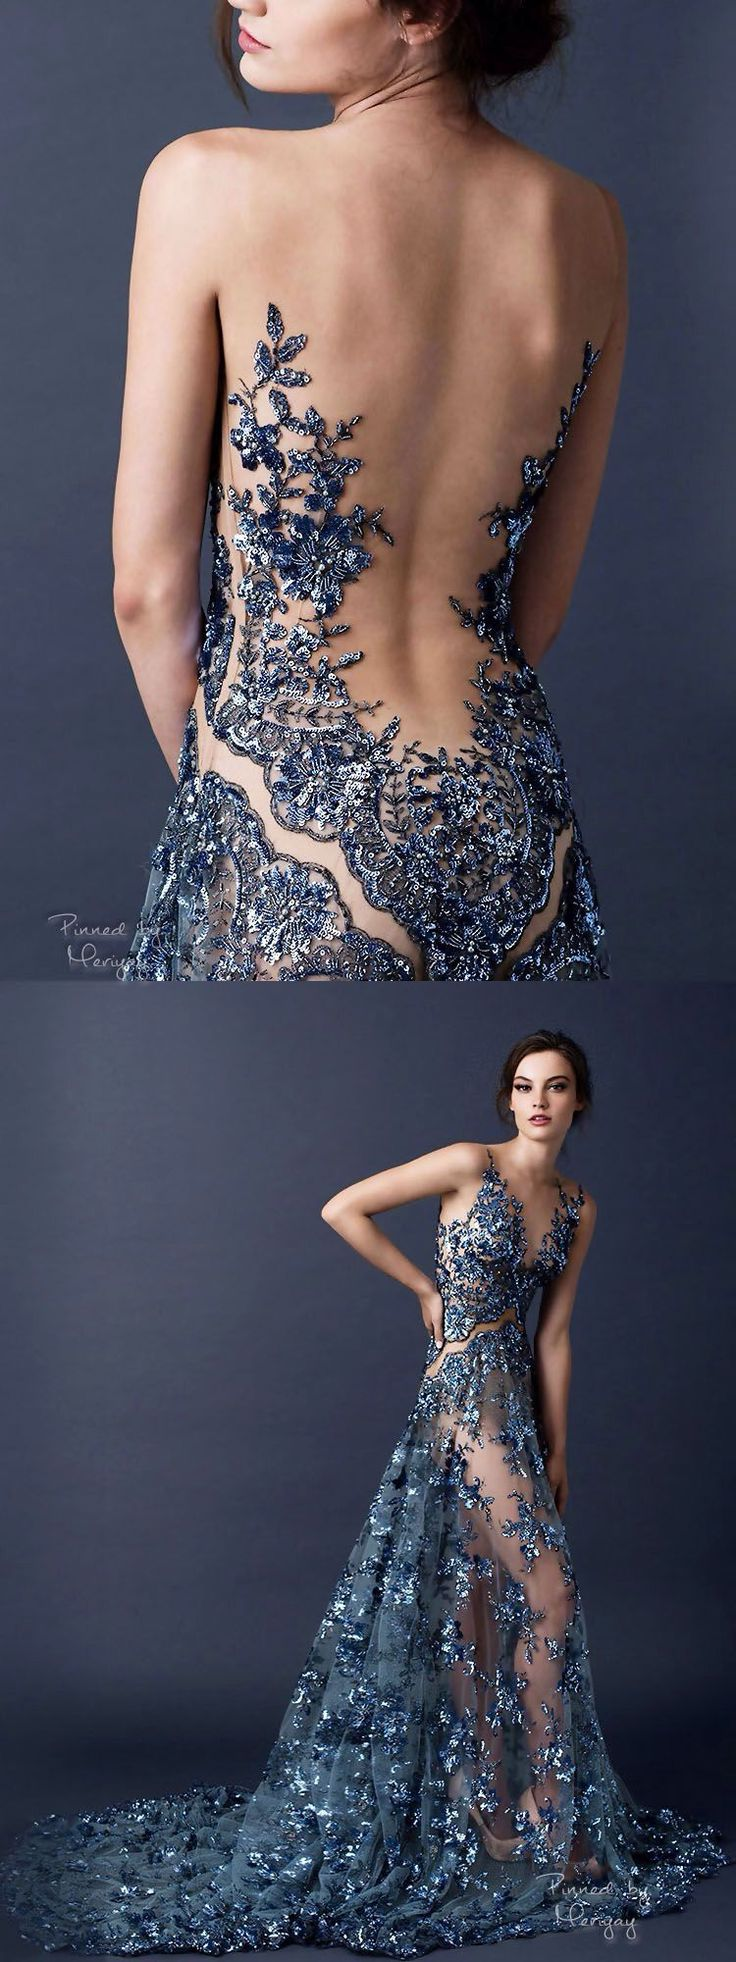 f2ceb9714675b7763835a3612b996b74.jpg 750×2,000 pixels How is she keeping that dress on?? Peek-a-boo